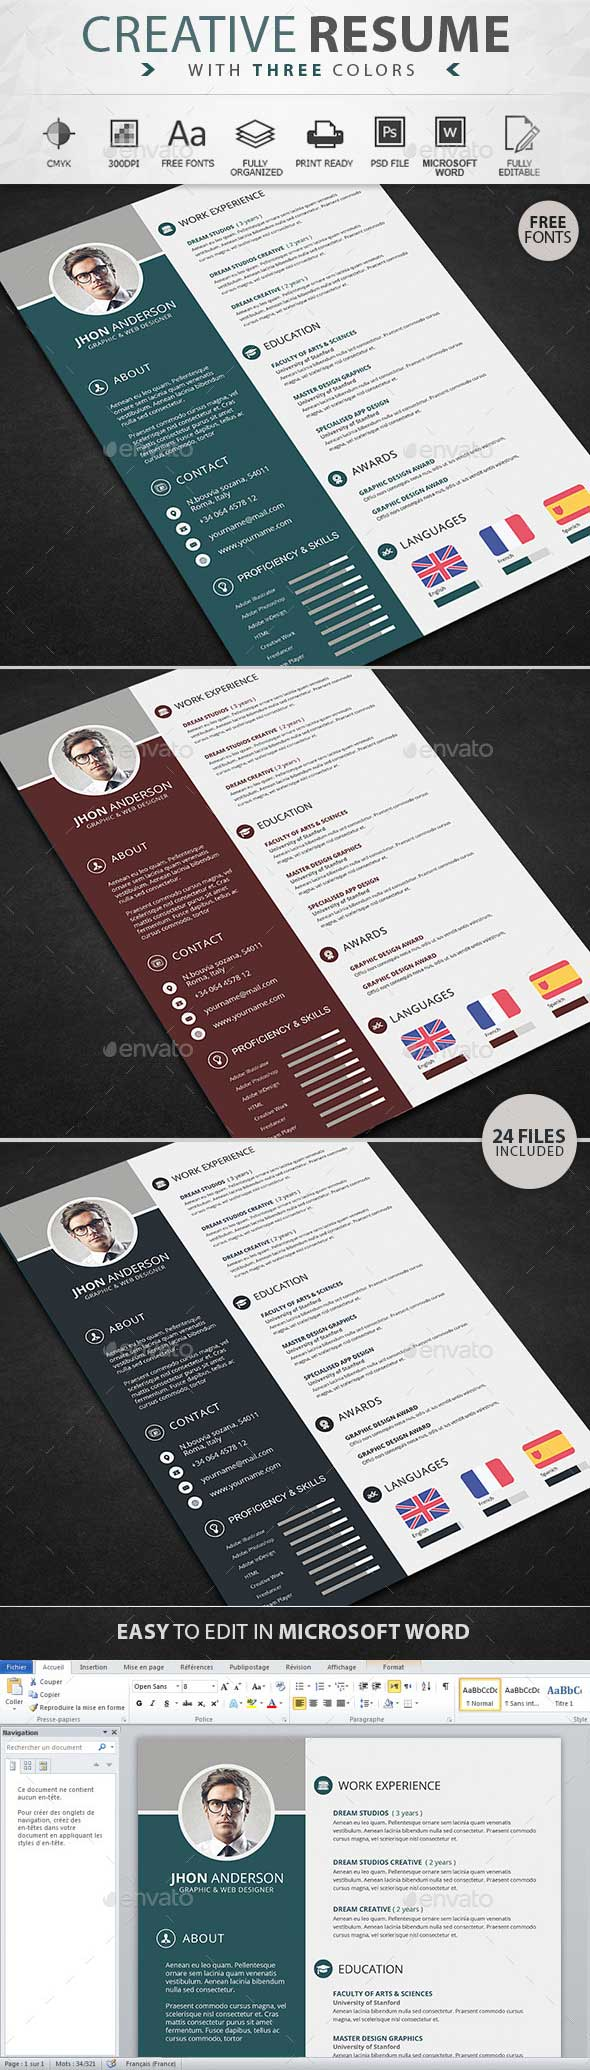 creative-resume-template-psd-ms-word-download